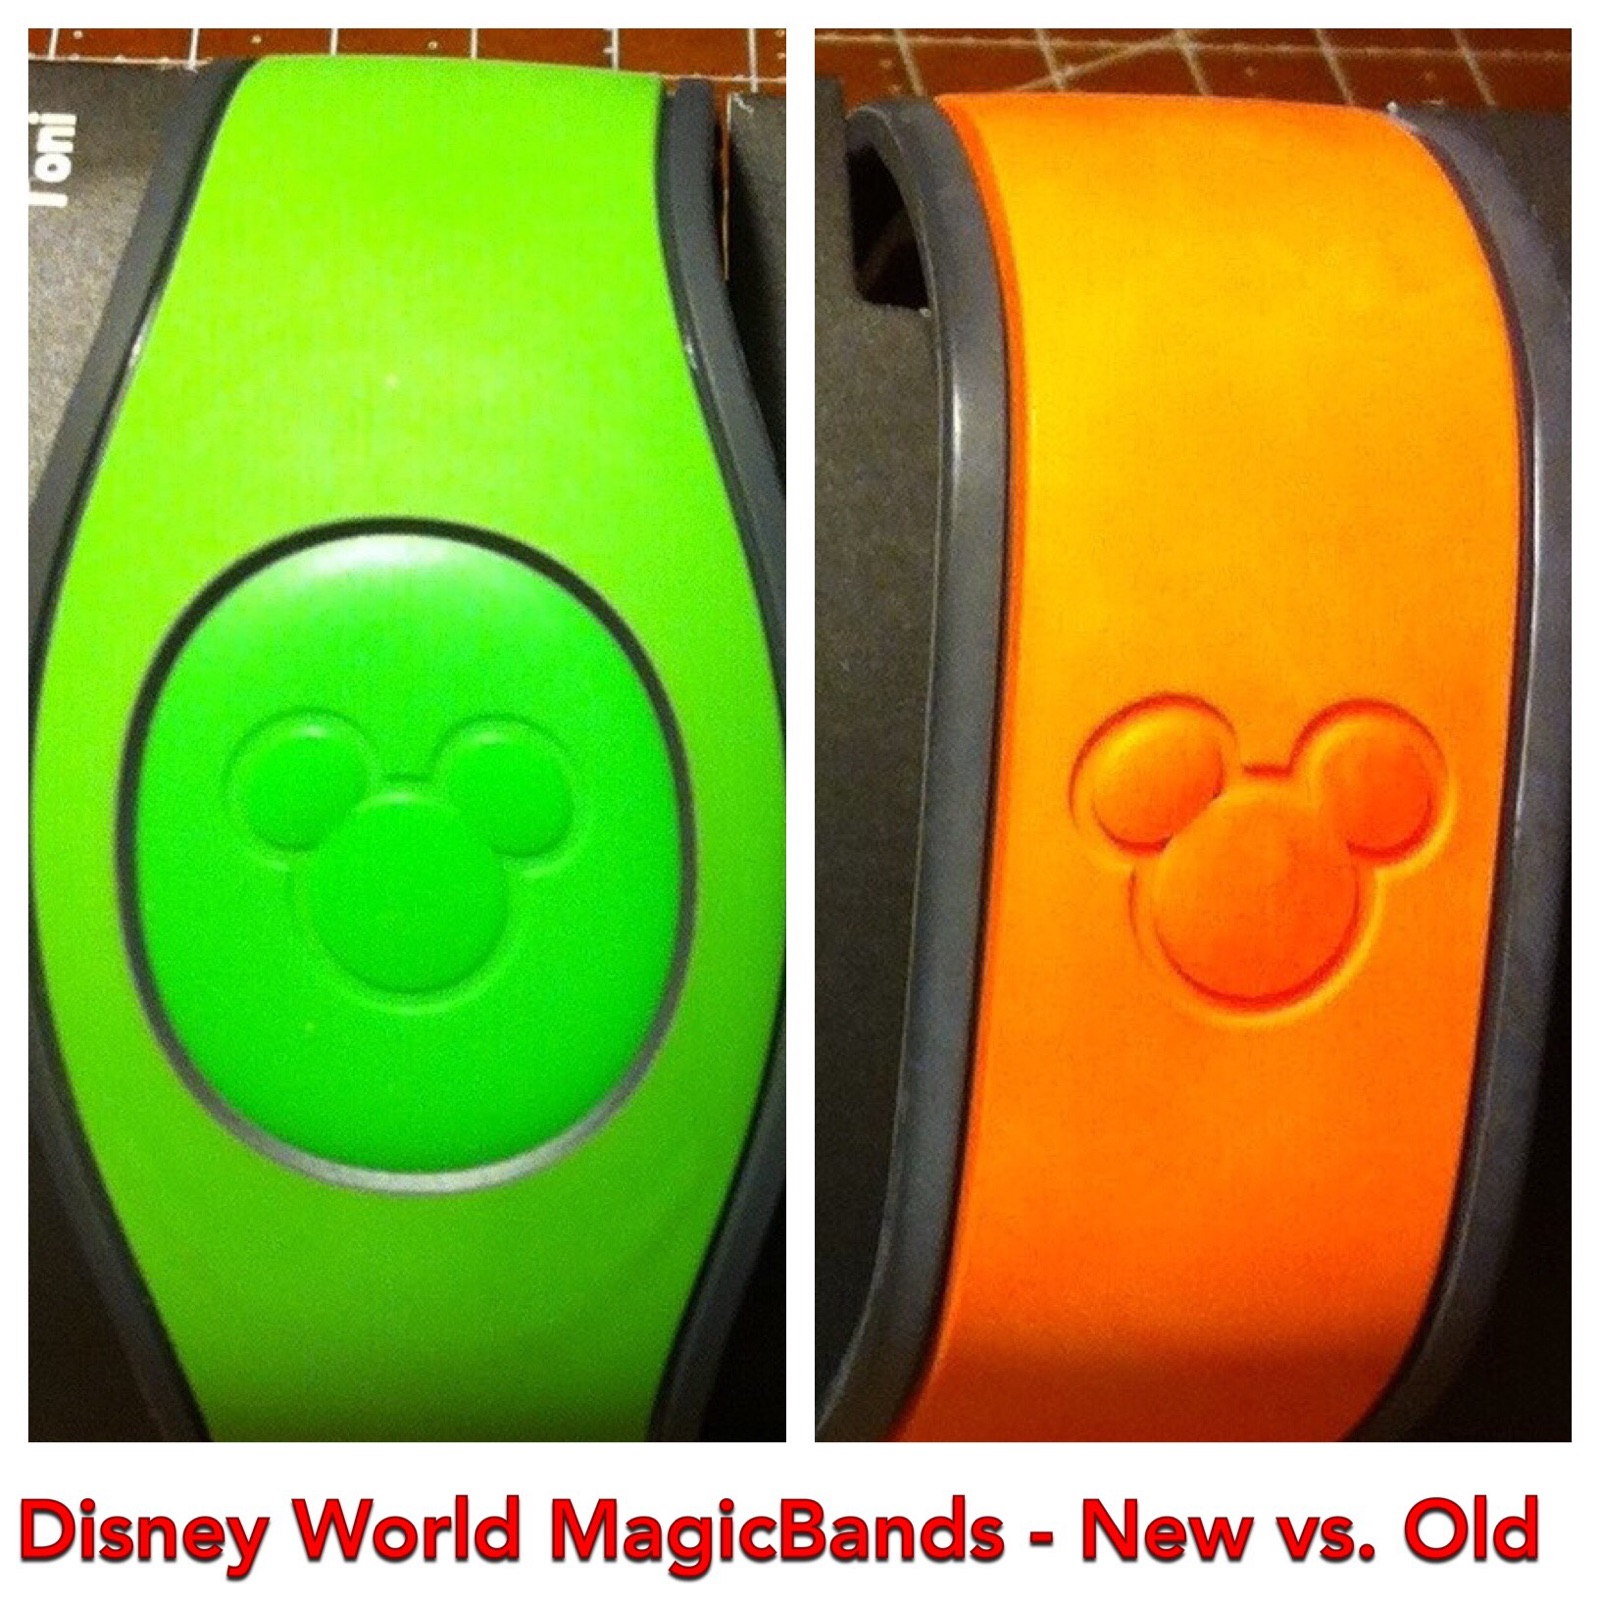 """A Comparison of the the """"New"""" and Old"""" Disney World Magic Bands"""